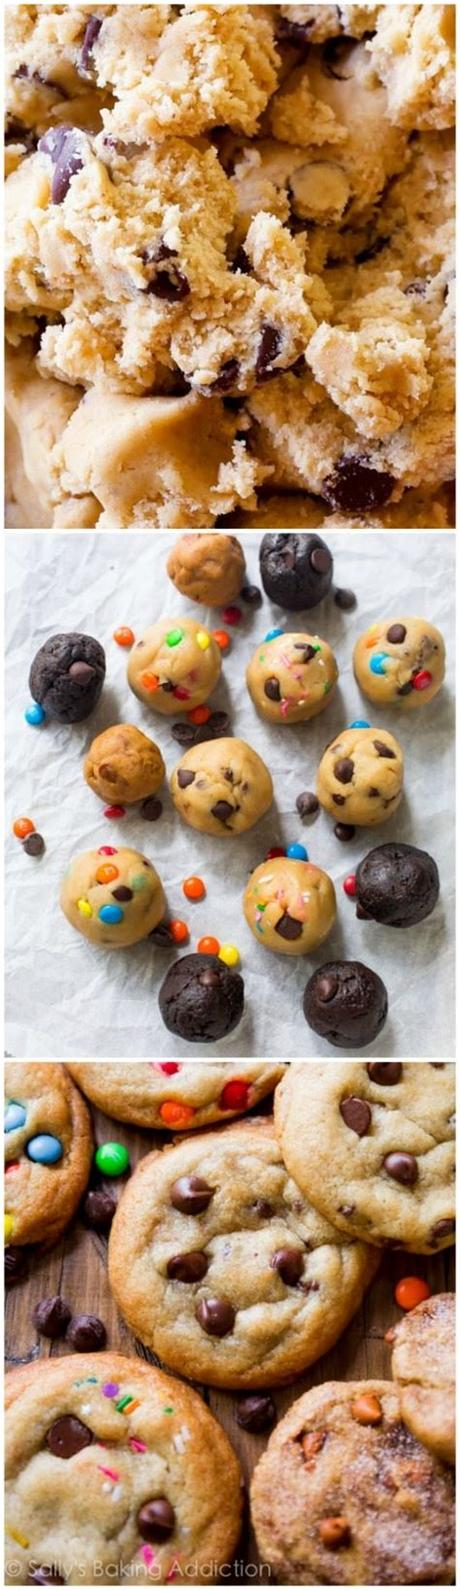 I hope you enjoy making your list and creating some new cookies for your holiday season. How to Freeze Cookie Dough - Sallys Baking Addiction